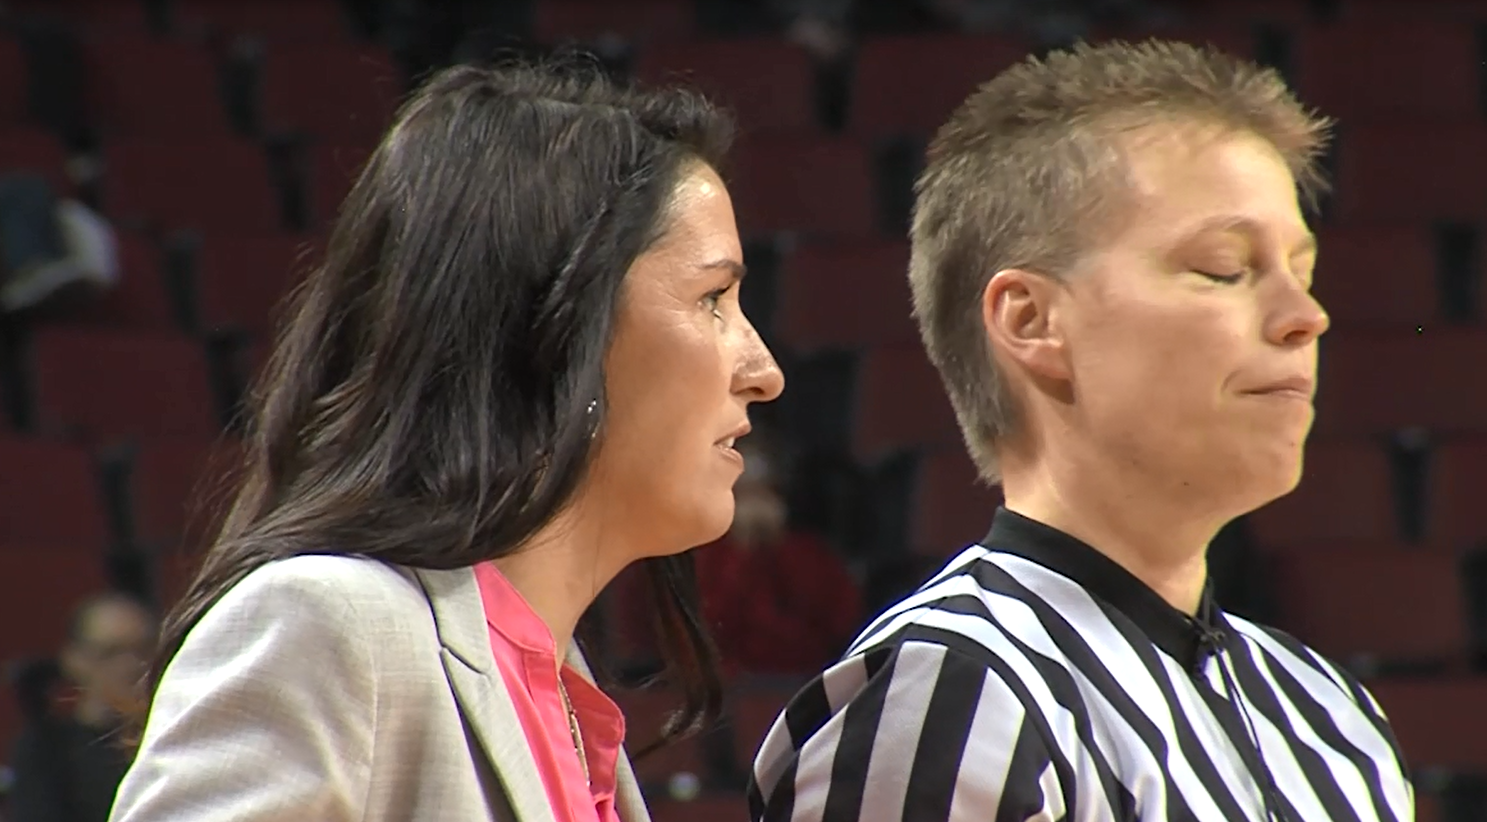 Nebraska head coach Amy Williams (left) speaks with an official as the Huskers women's basketball team takes on Colorado State, Nov. 17, 2016 (KHGI)